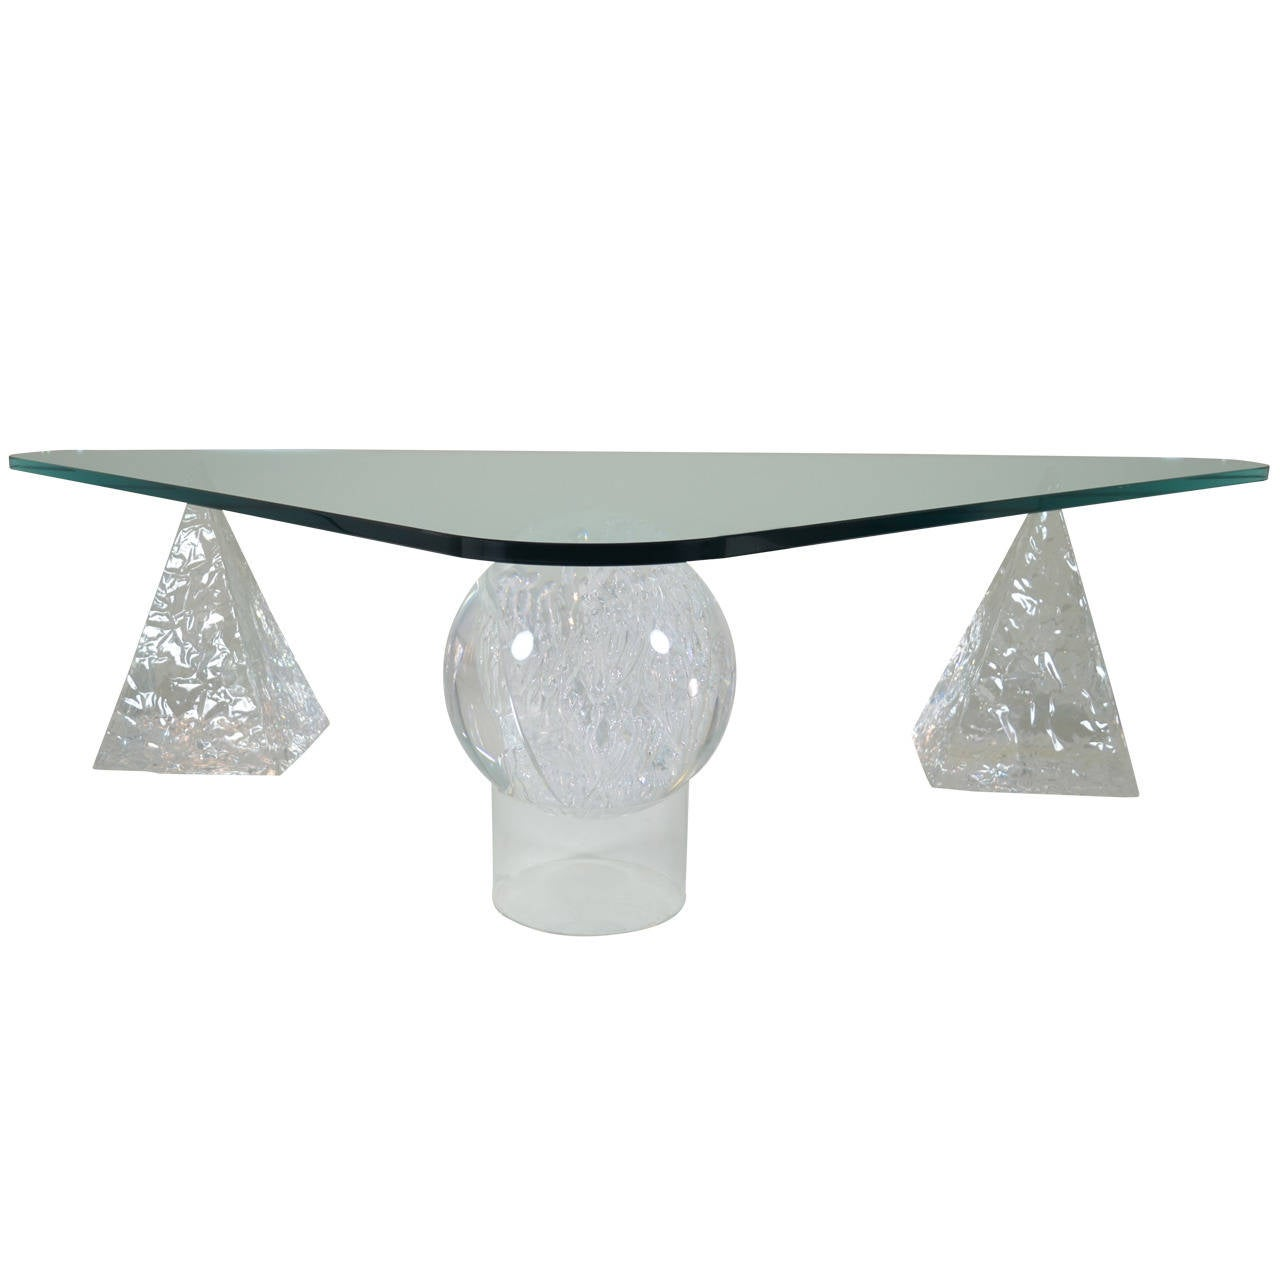 Geometric lucite based cocktail table at 1stdibs for Geometric coffee table